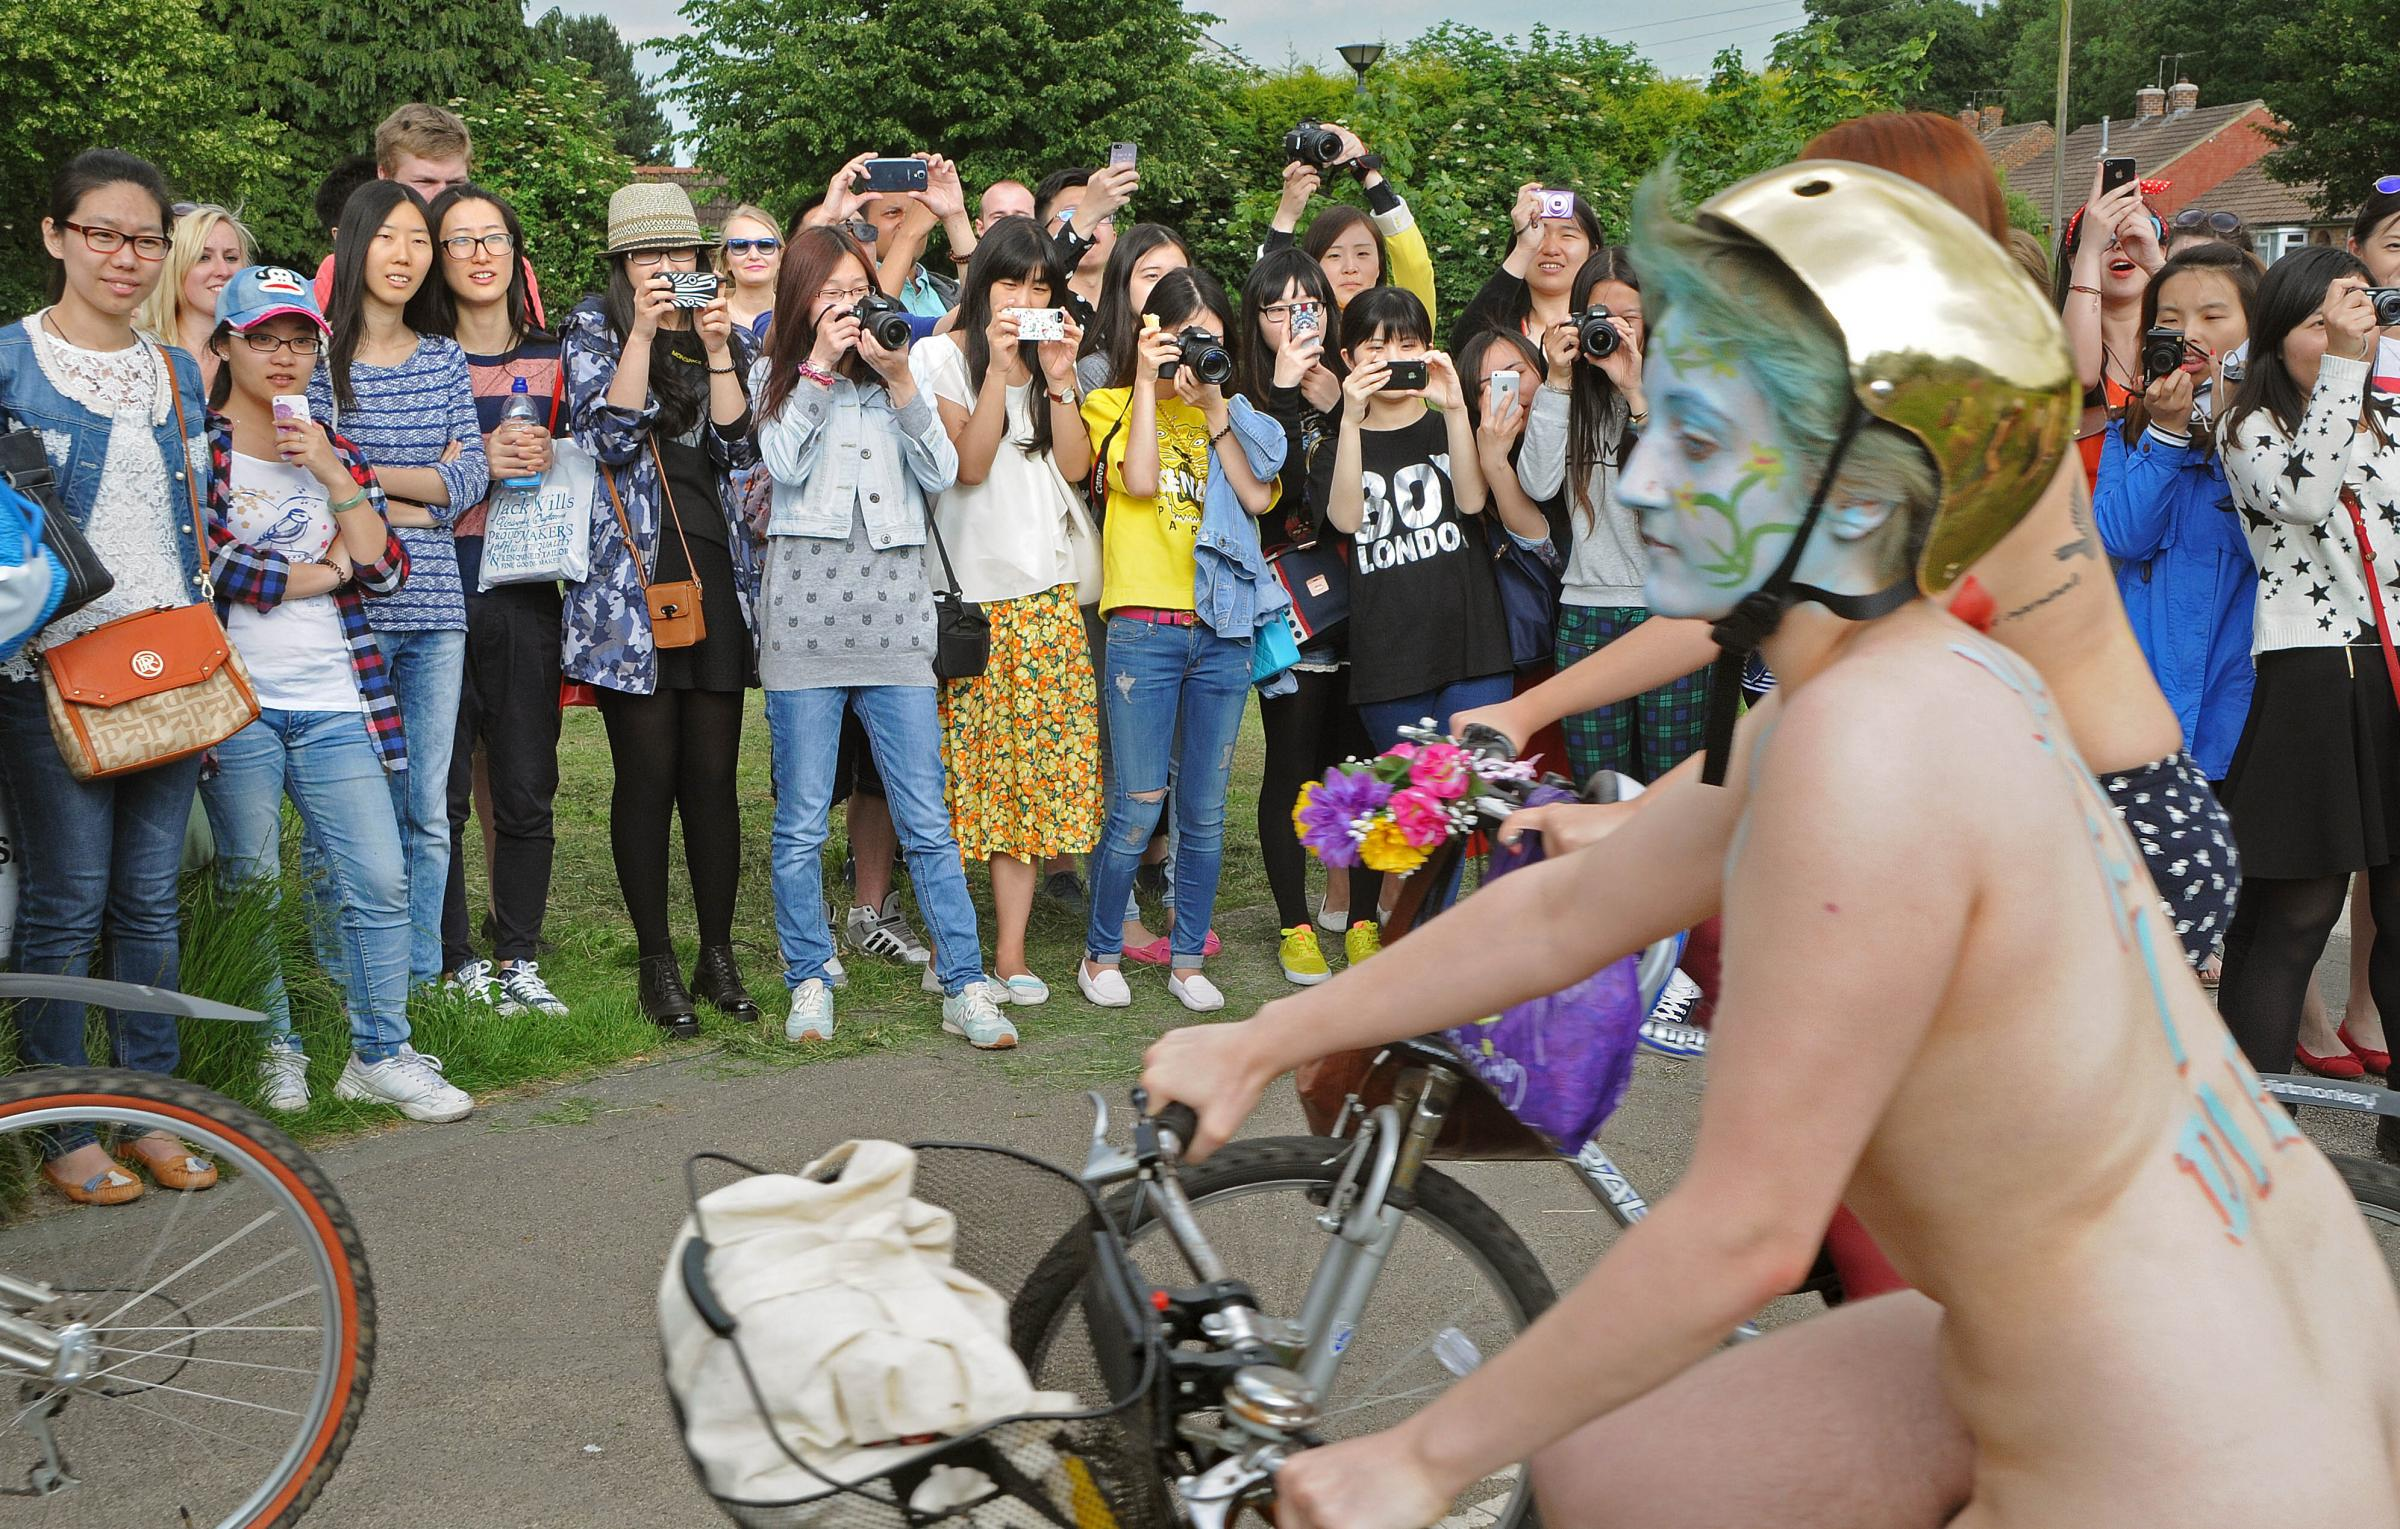 Cyclists bare all in World Naked Bike Ride